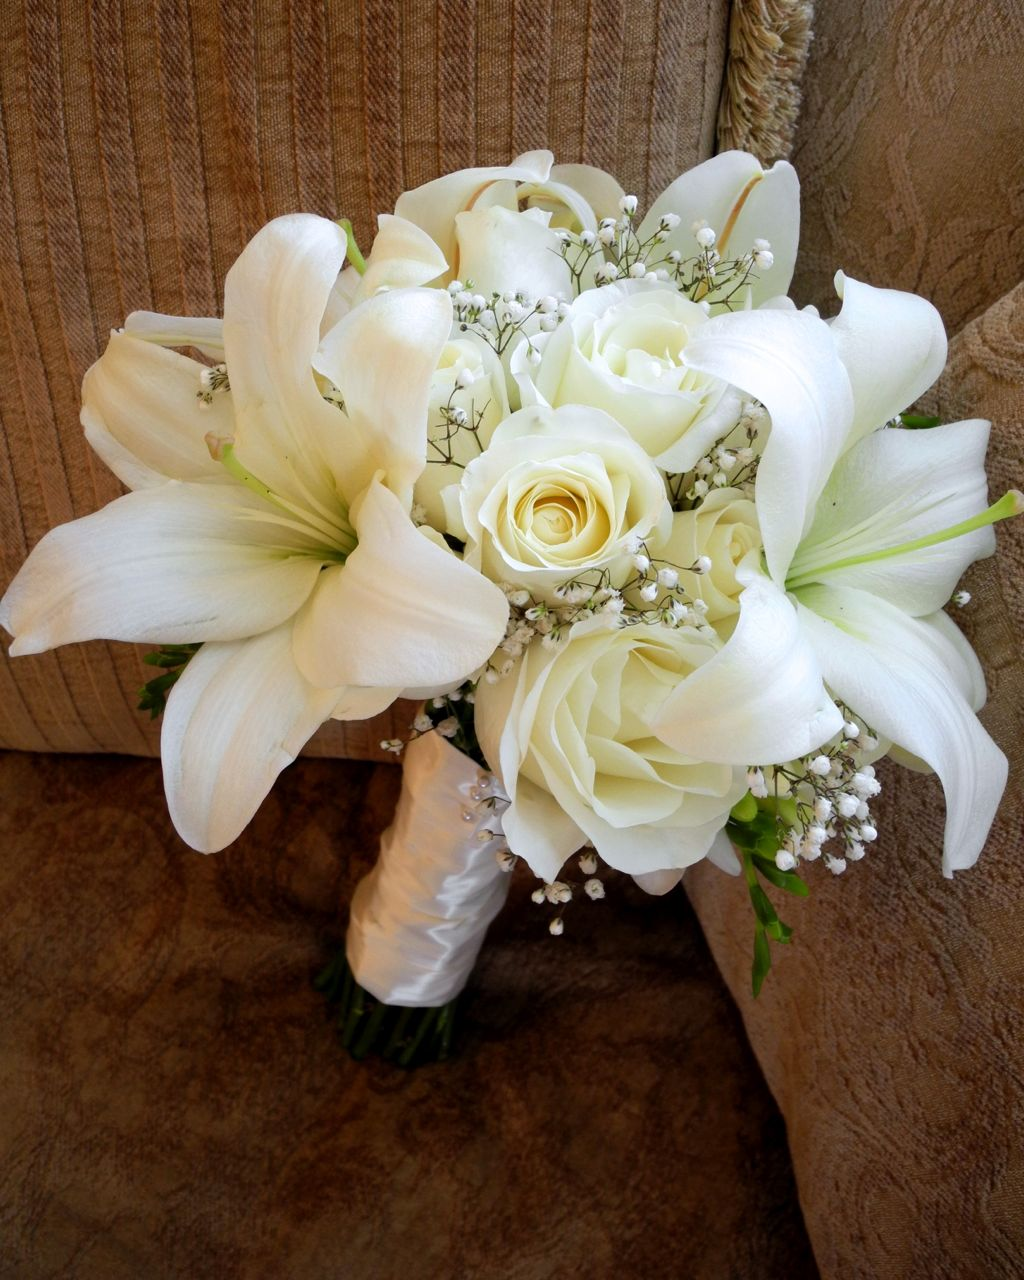 Wedding Flowers Roses And Lilies : The flower girl white bridal bouquet